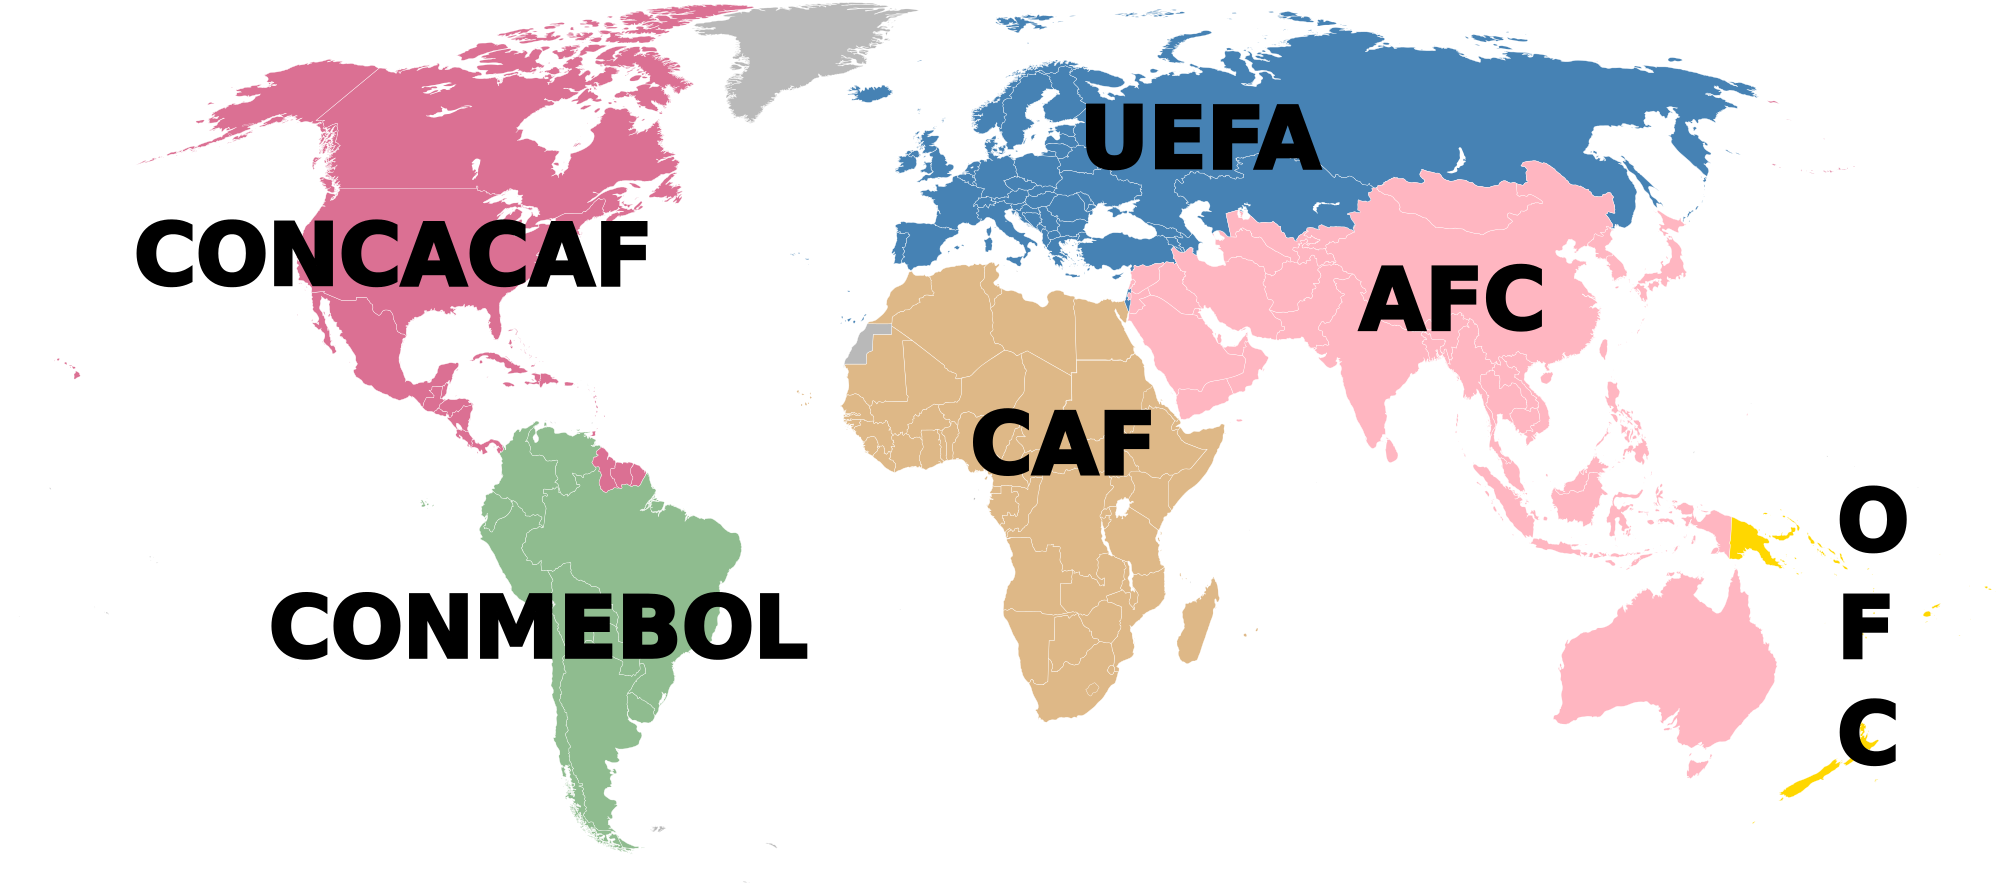 The FIFA Regional Associations Including: The AFC in Asia, CAF in Africa, the Football Confederation (CONCACAF) in North and Central America and the Caribbean, CONMEBOL in South America, UEFA in Europe and the OFC in Oceania. Thumbnail: wikipedia.com https://upload.wikimedia.org/wikipedia/commons/thumb/a/a8/World_Map_FIFA2.svg/2000px-World_Map_FIFA2.svg.png